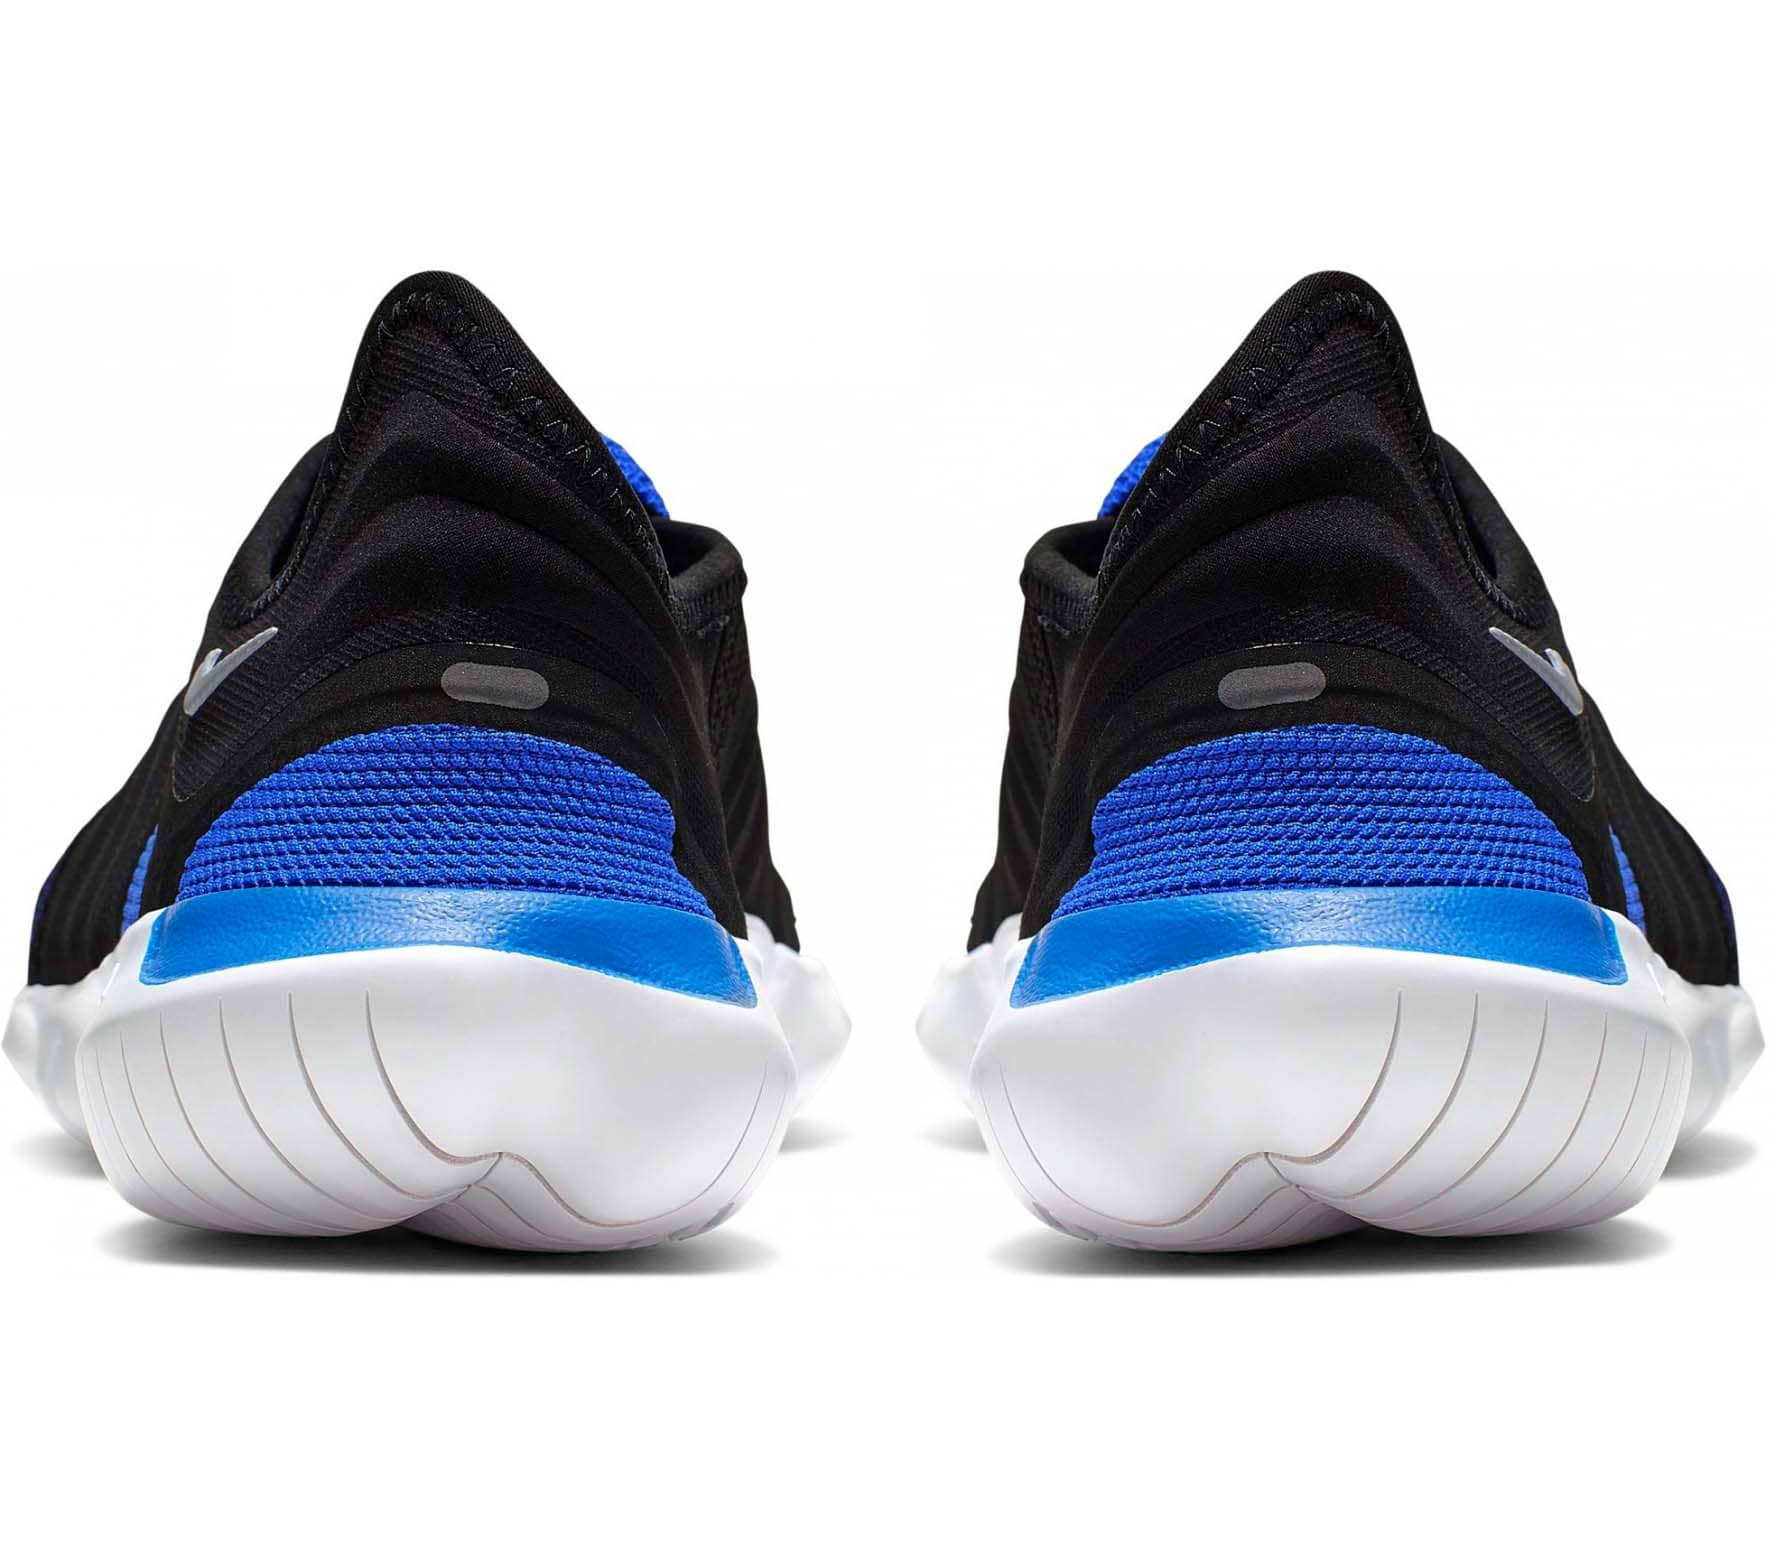 sports shoes 3f8b6 72aed Nike Free RN Flyknit 3.0 Men Running Shoes blue